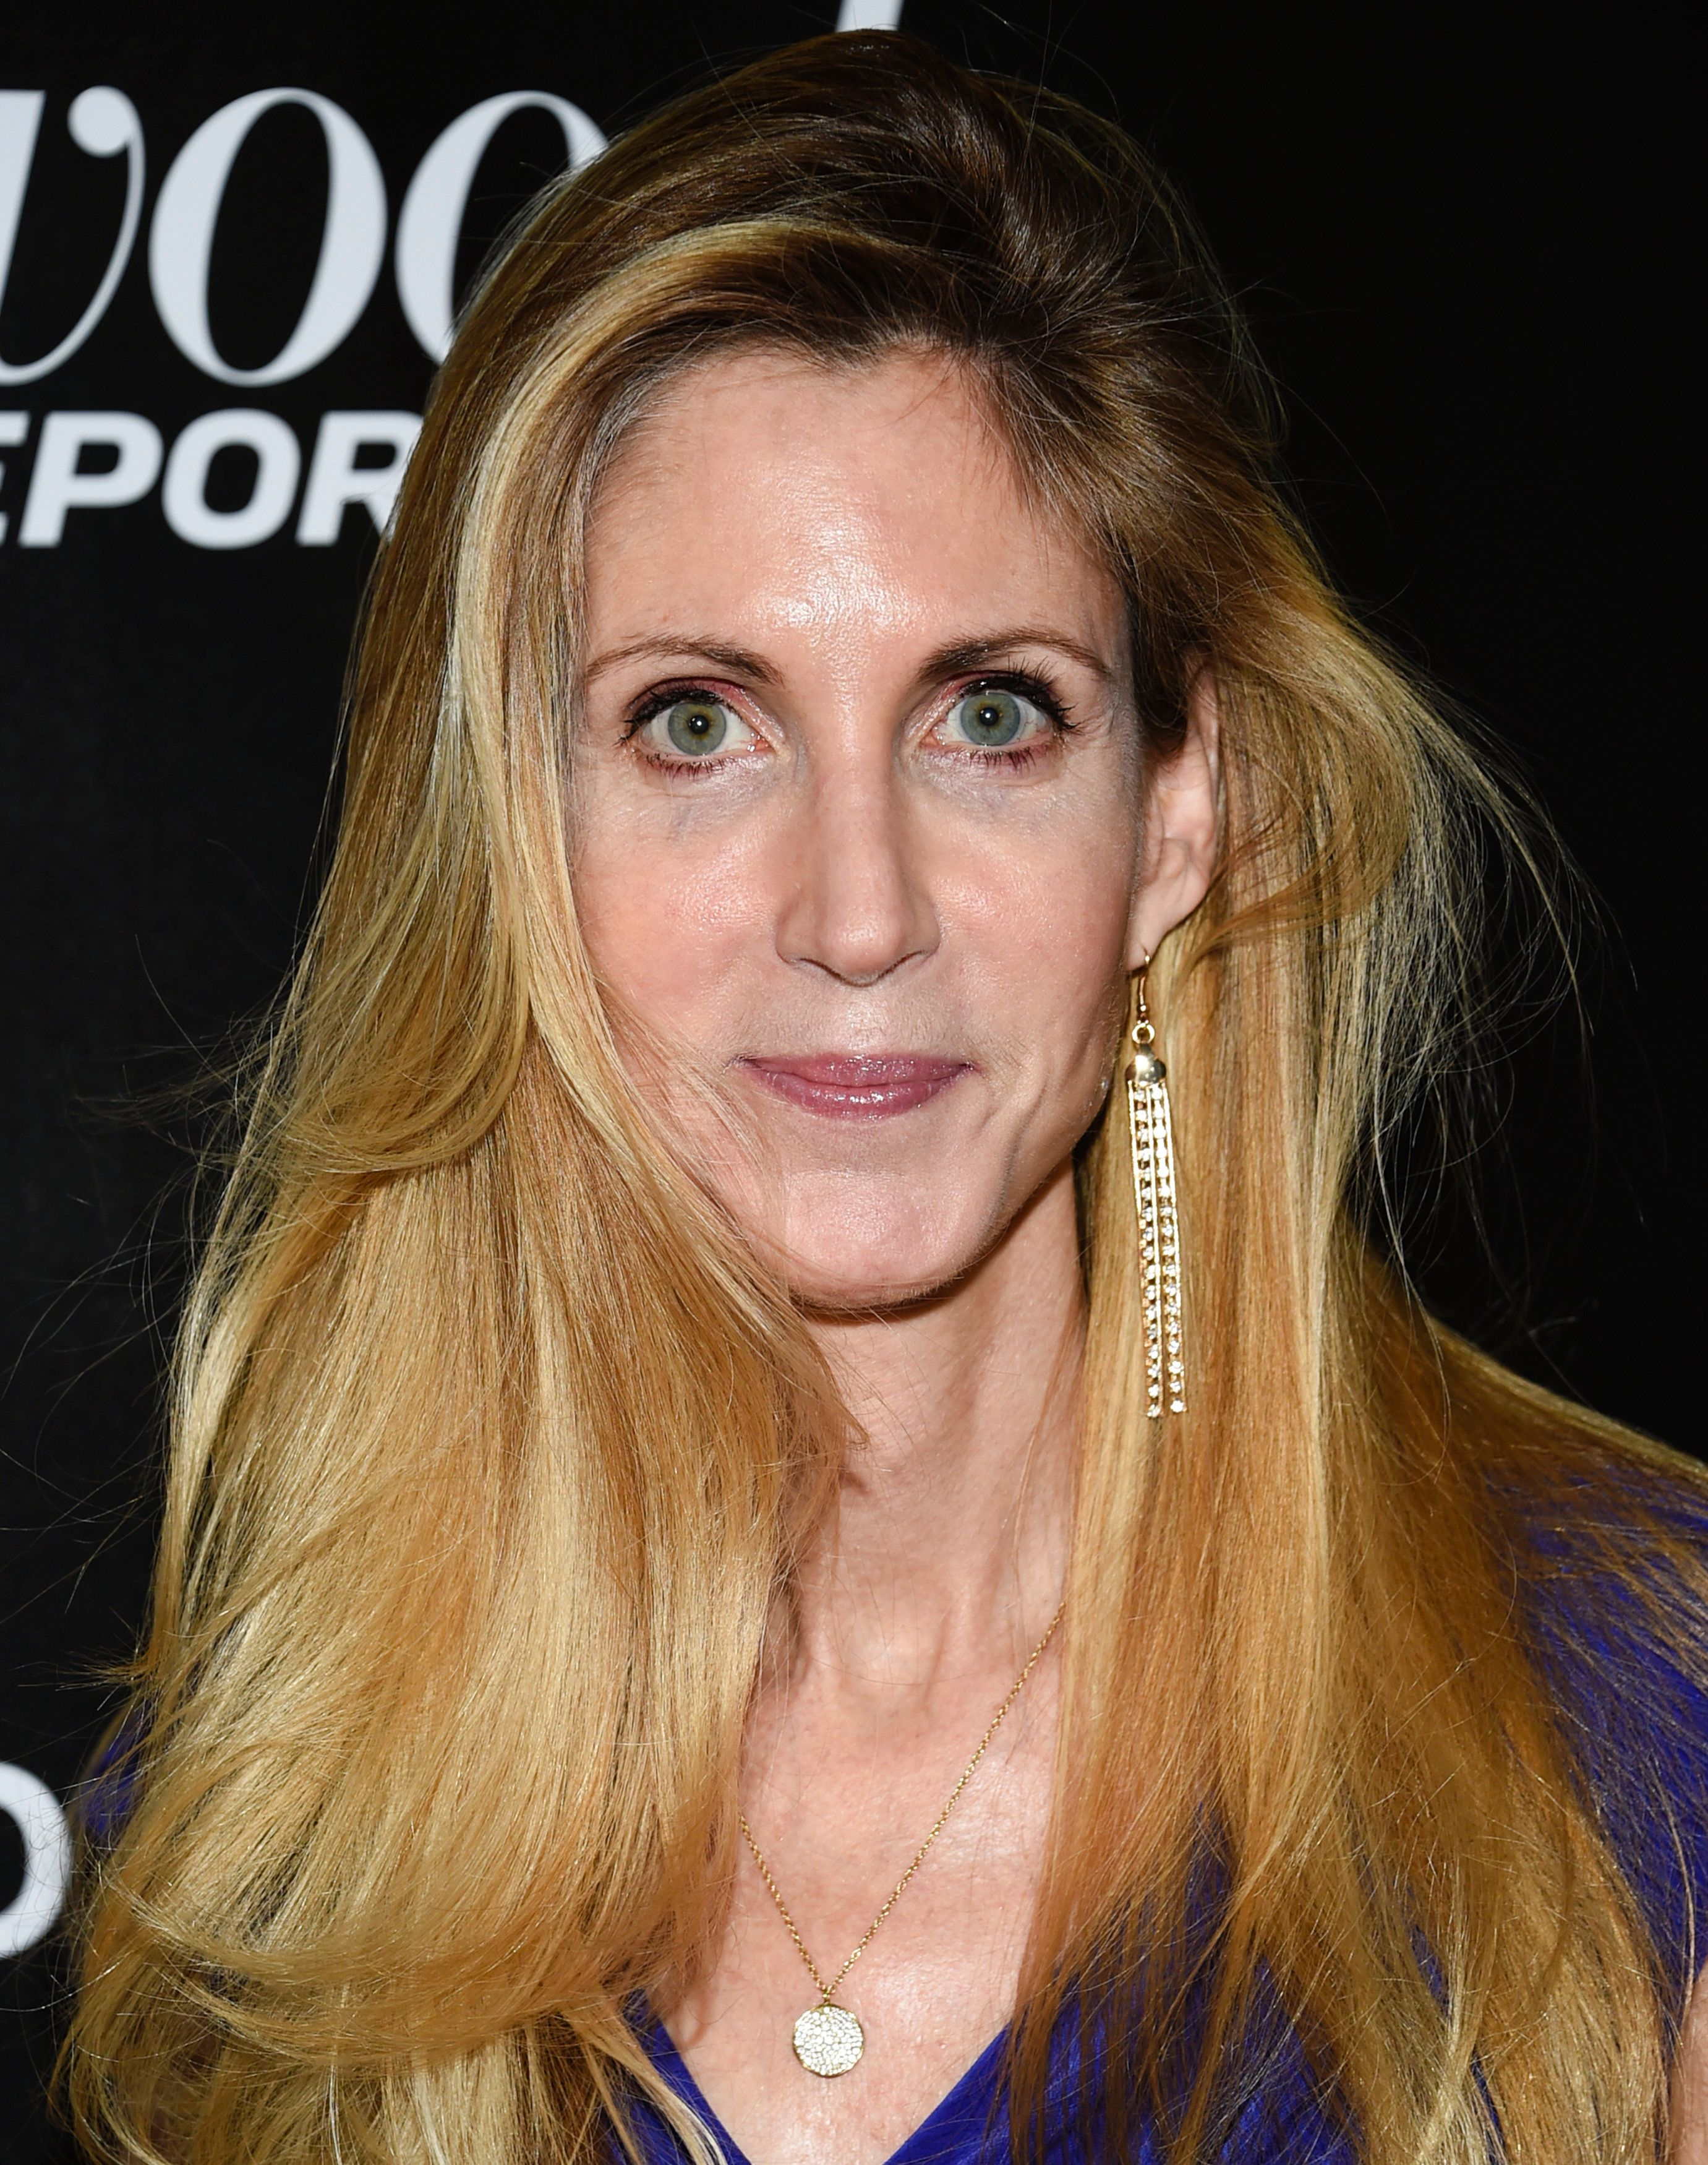 Political commentator Ann Coulter attends The Hollywood Reporter's annual 35 Most Powerful People in Media event at The Pool on Thursday, April 12, 2018, in New York. (Photo by Evan Agostini/Invision/AP)